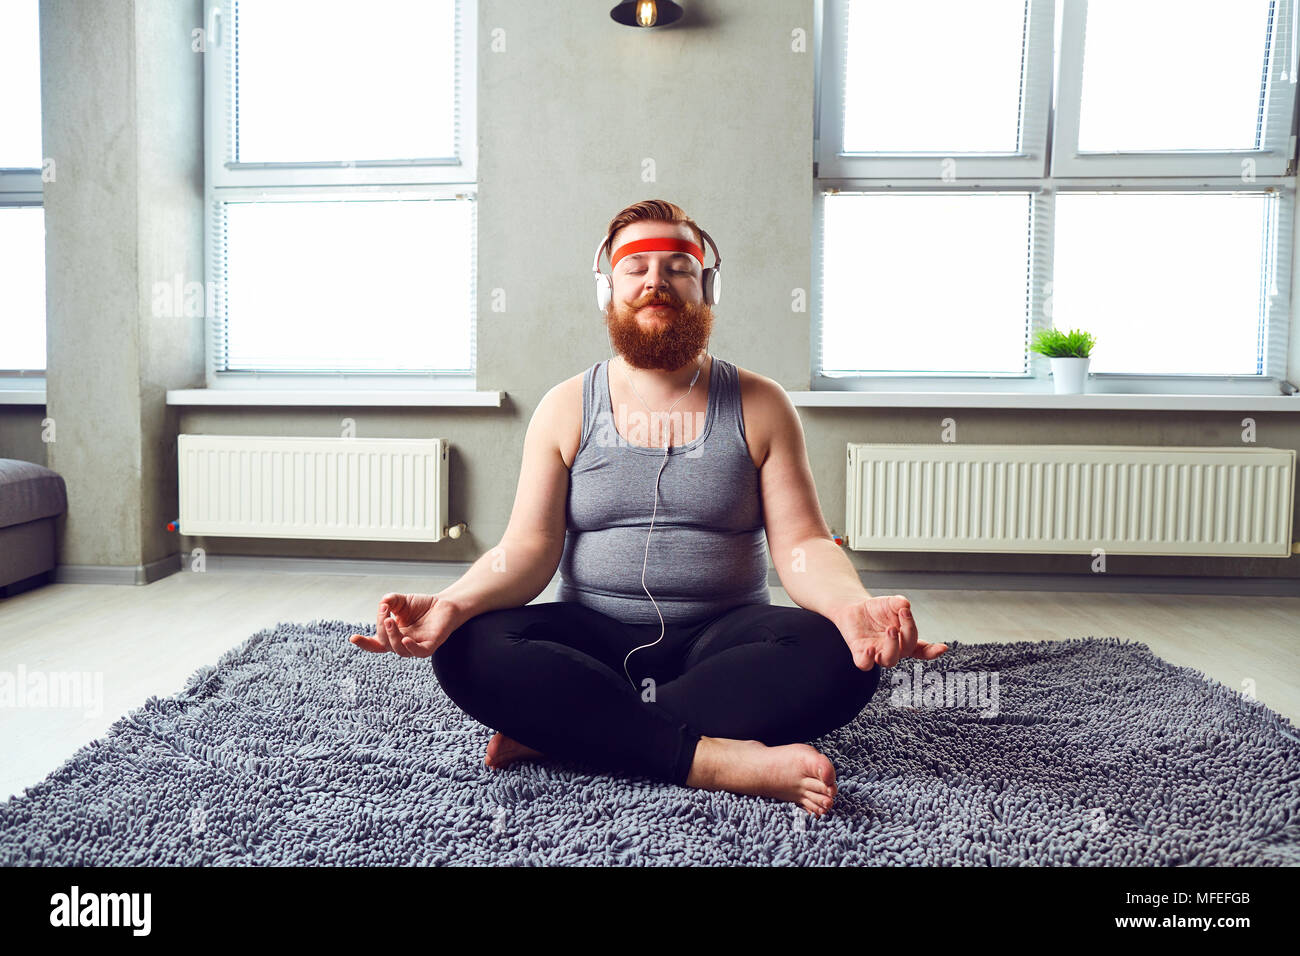 A Funny Fat Bearded Man In The Headphones Does Yoga